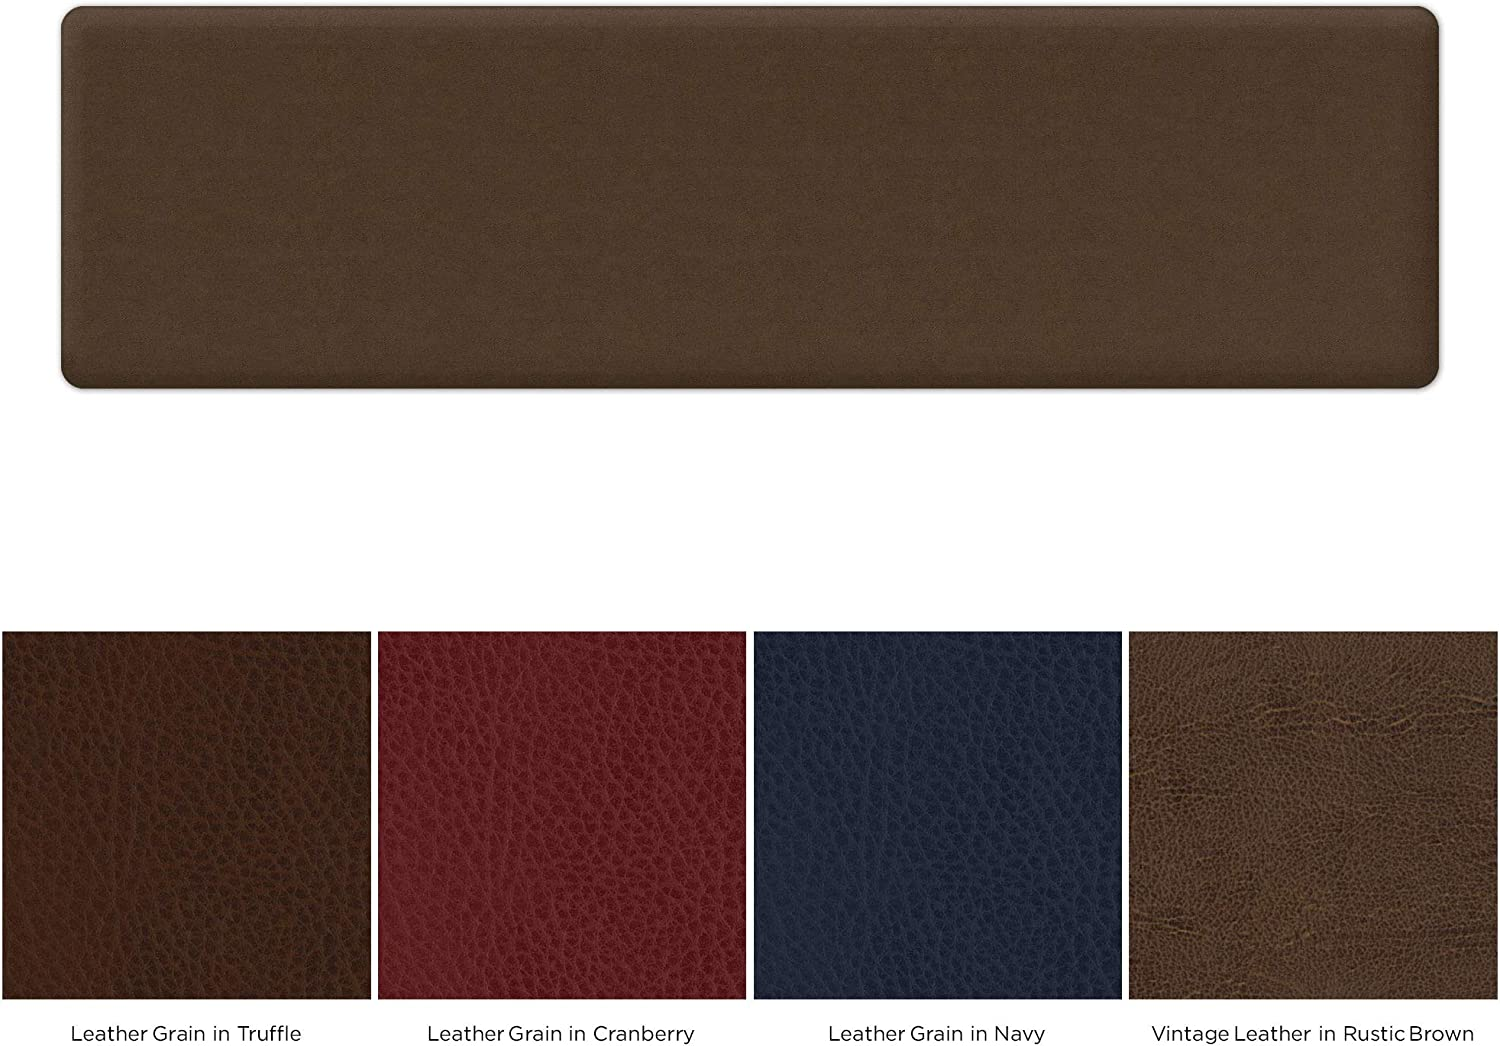 NewLife by GelPro Utility Comfort Mat 20  x 72  Vintage Leather Rustic Brown